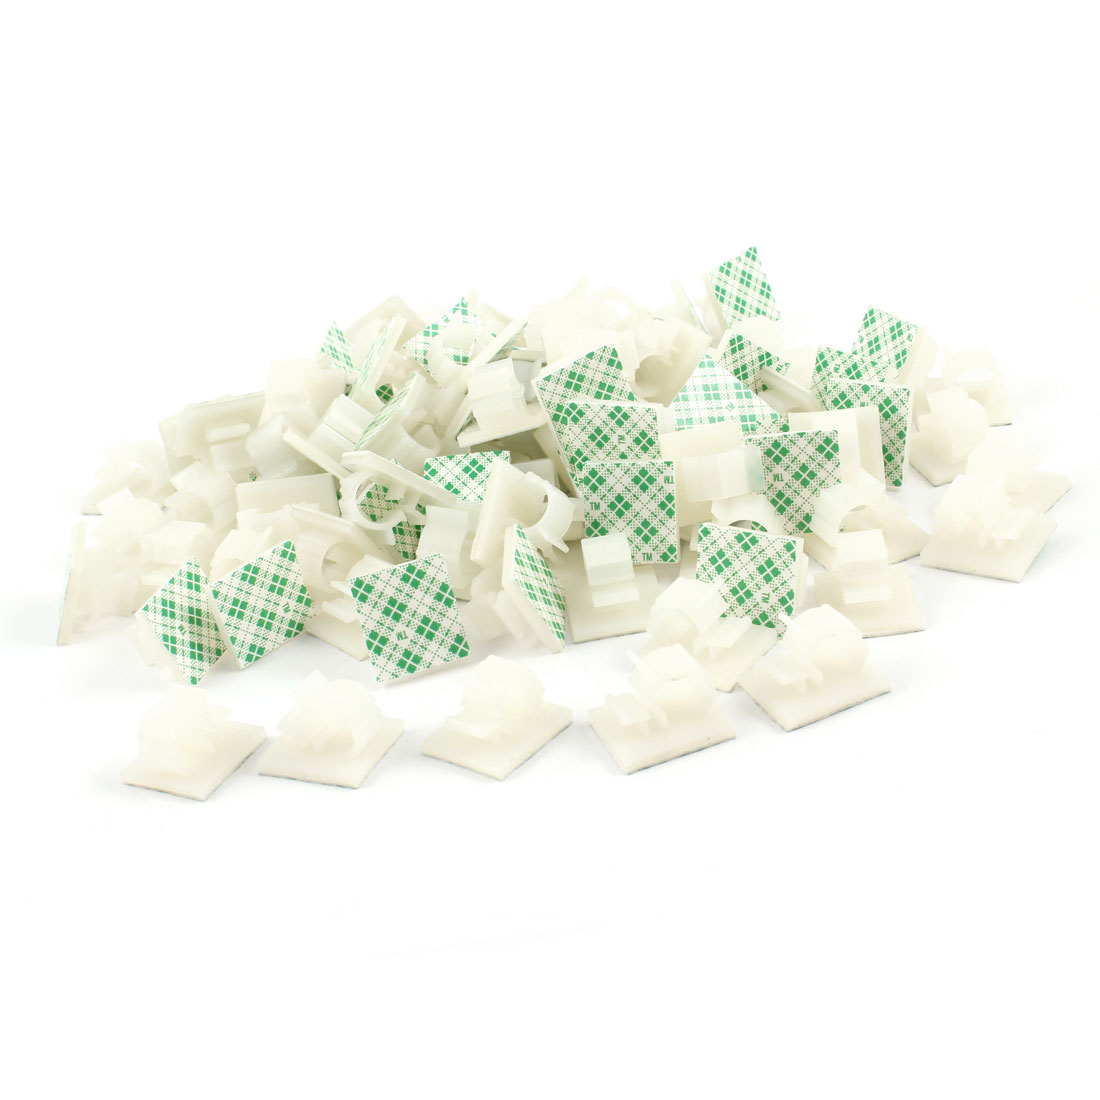 100 Pcs Off White Plastic Wire Holder 10mm Cable Tie Mount Base FWS-1